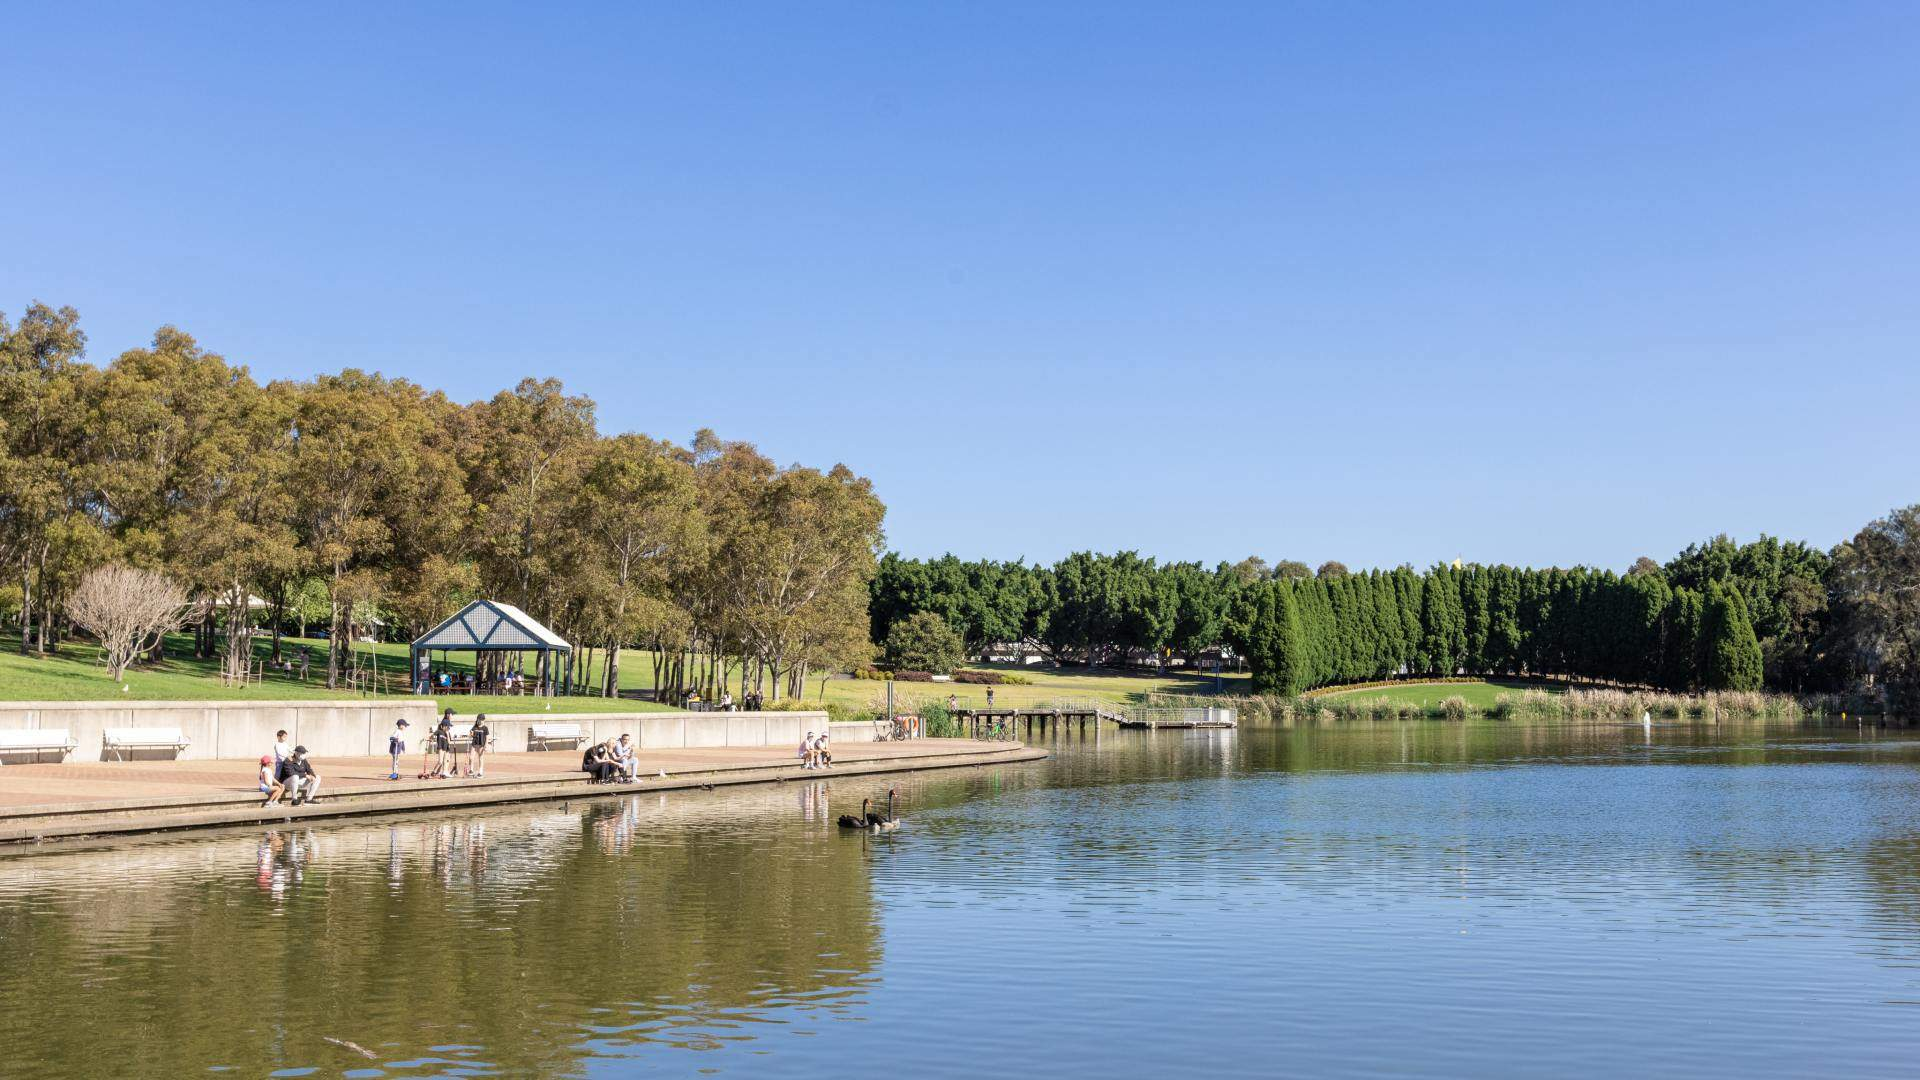 Six Idyllic Spots for a Picnic in the Inner West Where You Can BYO Booze